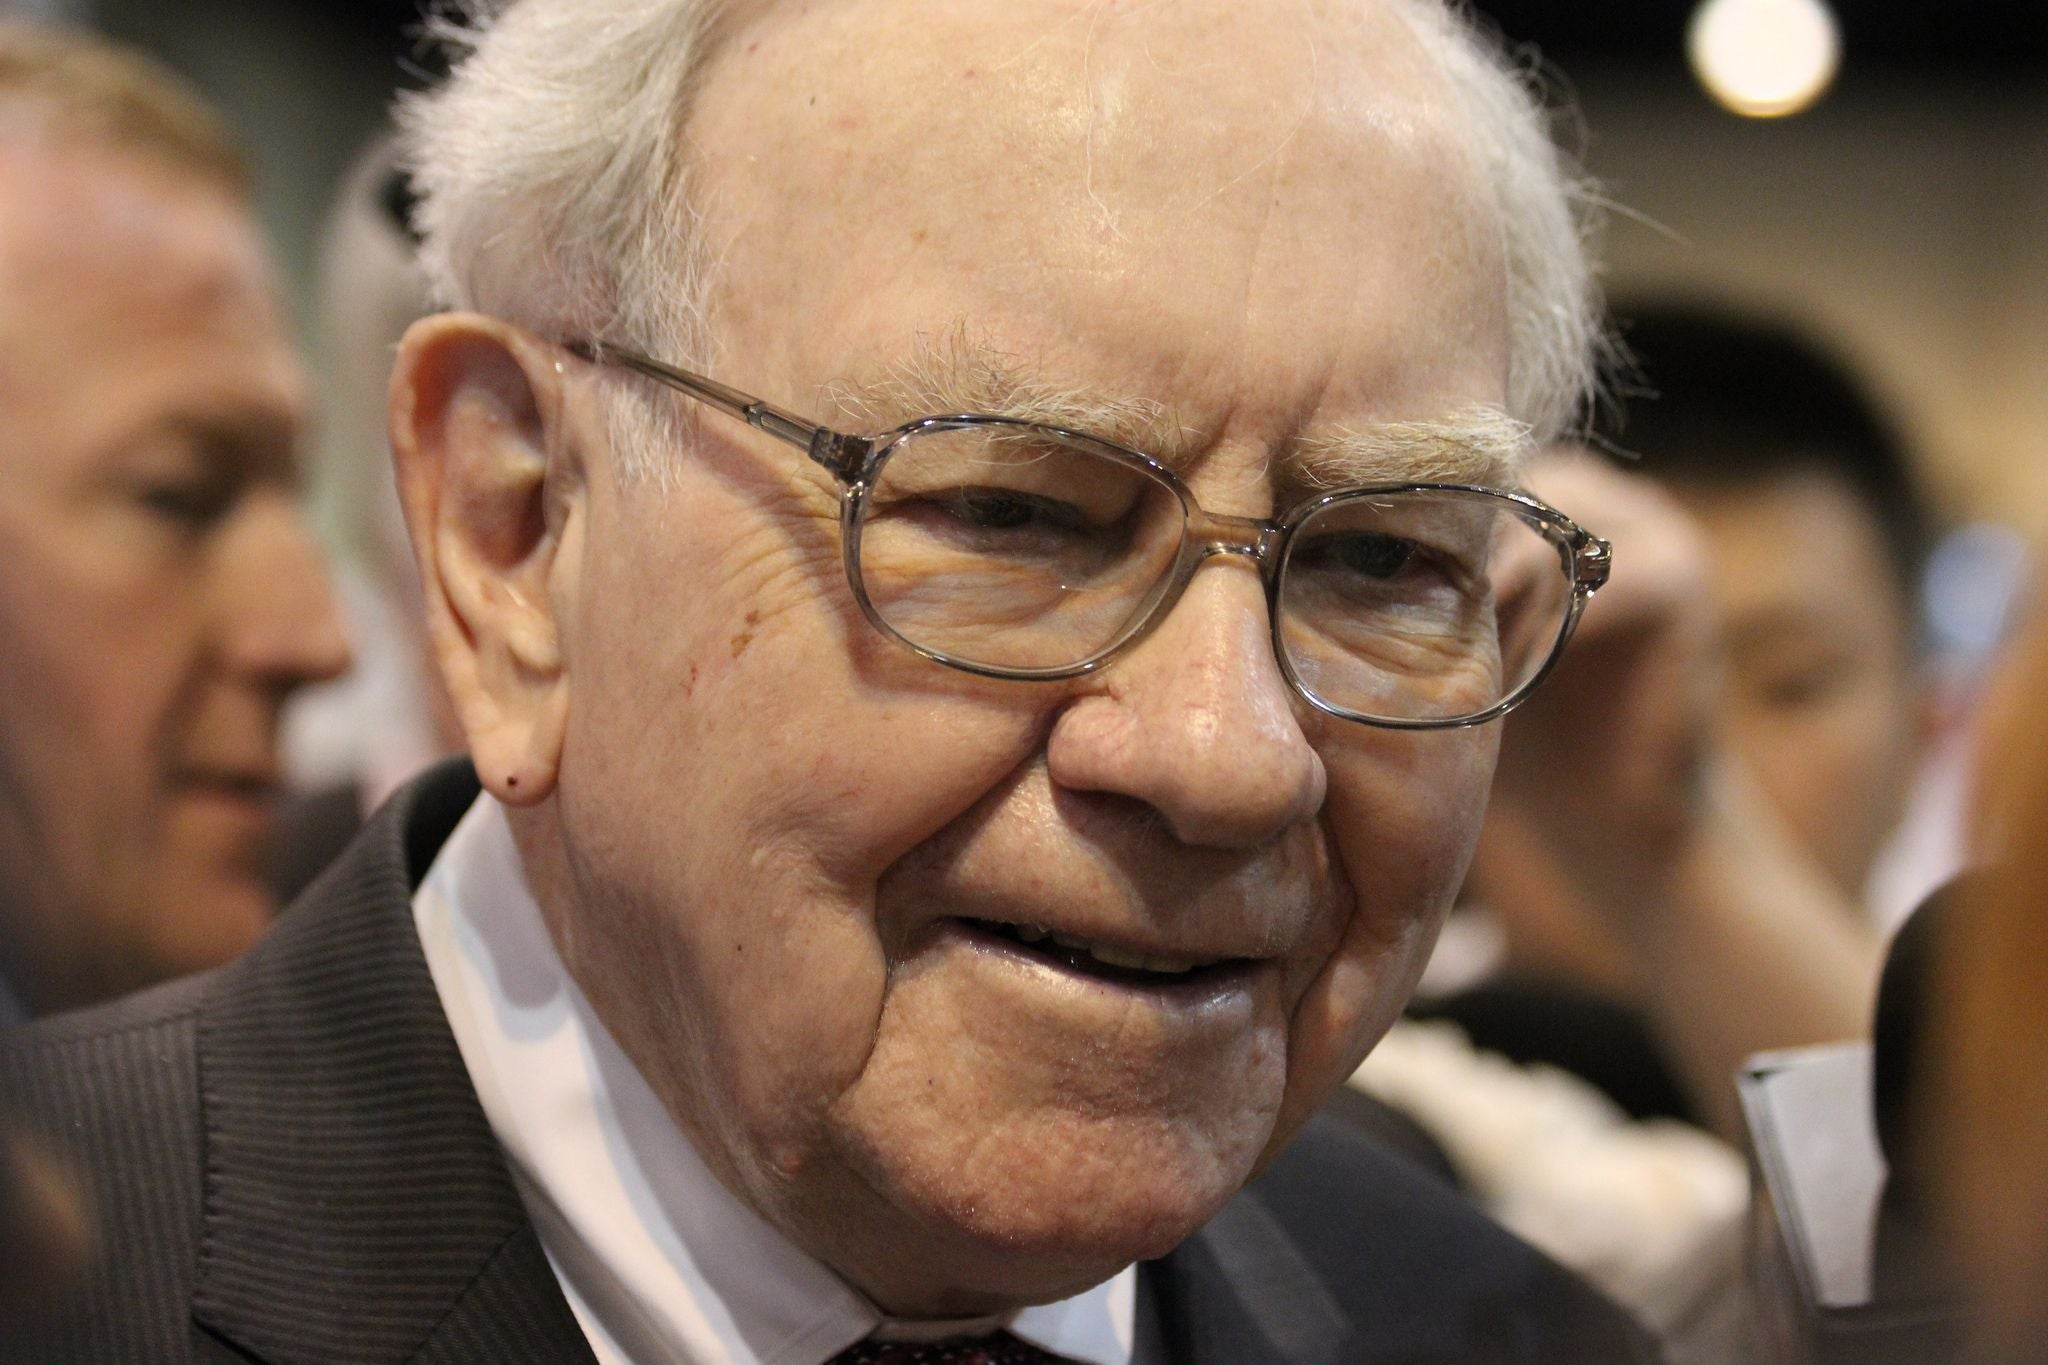 Warren Buffett Is Buying This Stock Faster Than Any Other | The Motley Fool